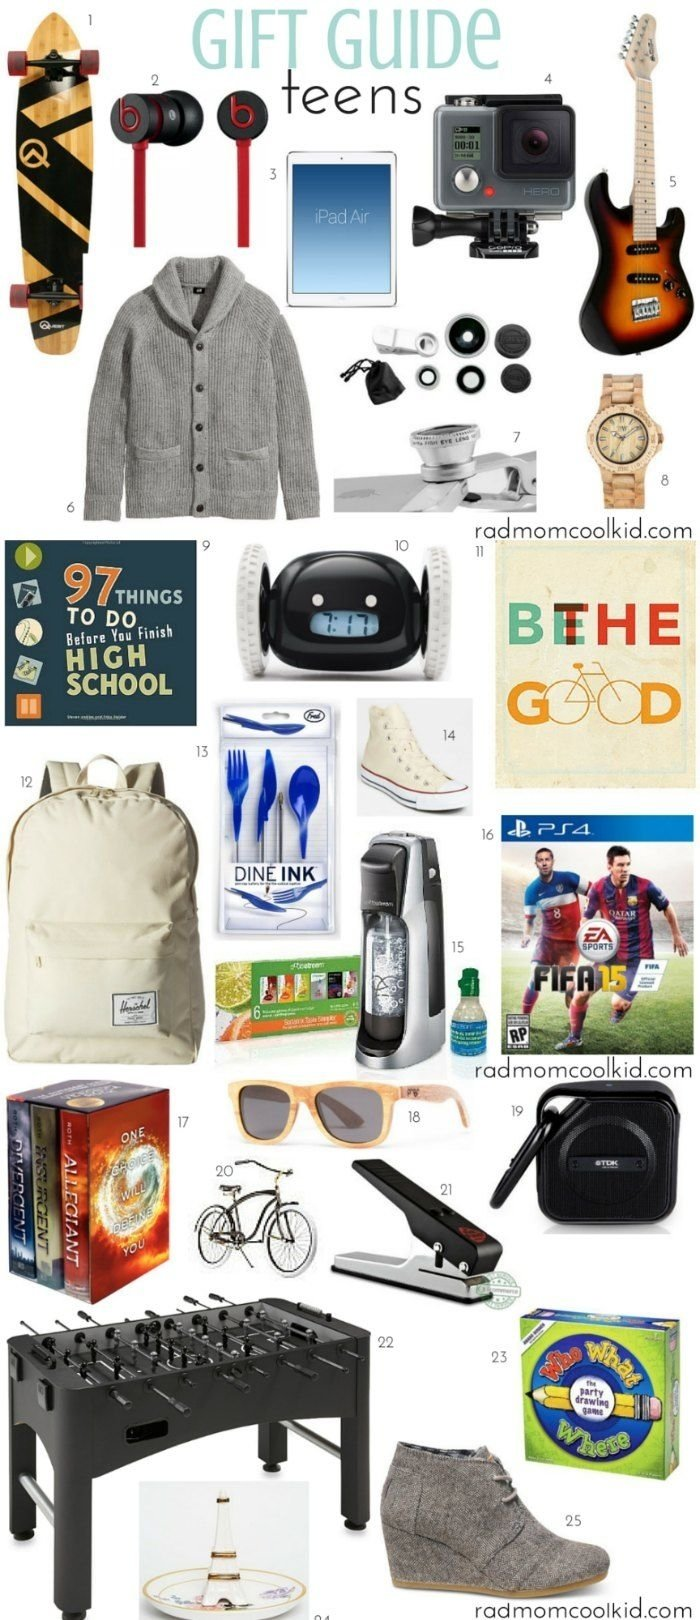 10 Fashionable Christmas Gift Ideas For Teenage Guys 28 Best Guide Age 12 Images On